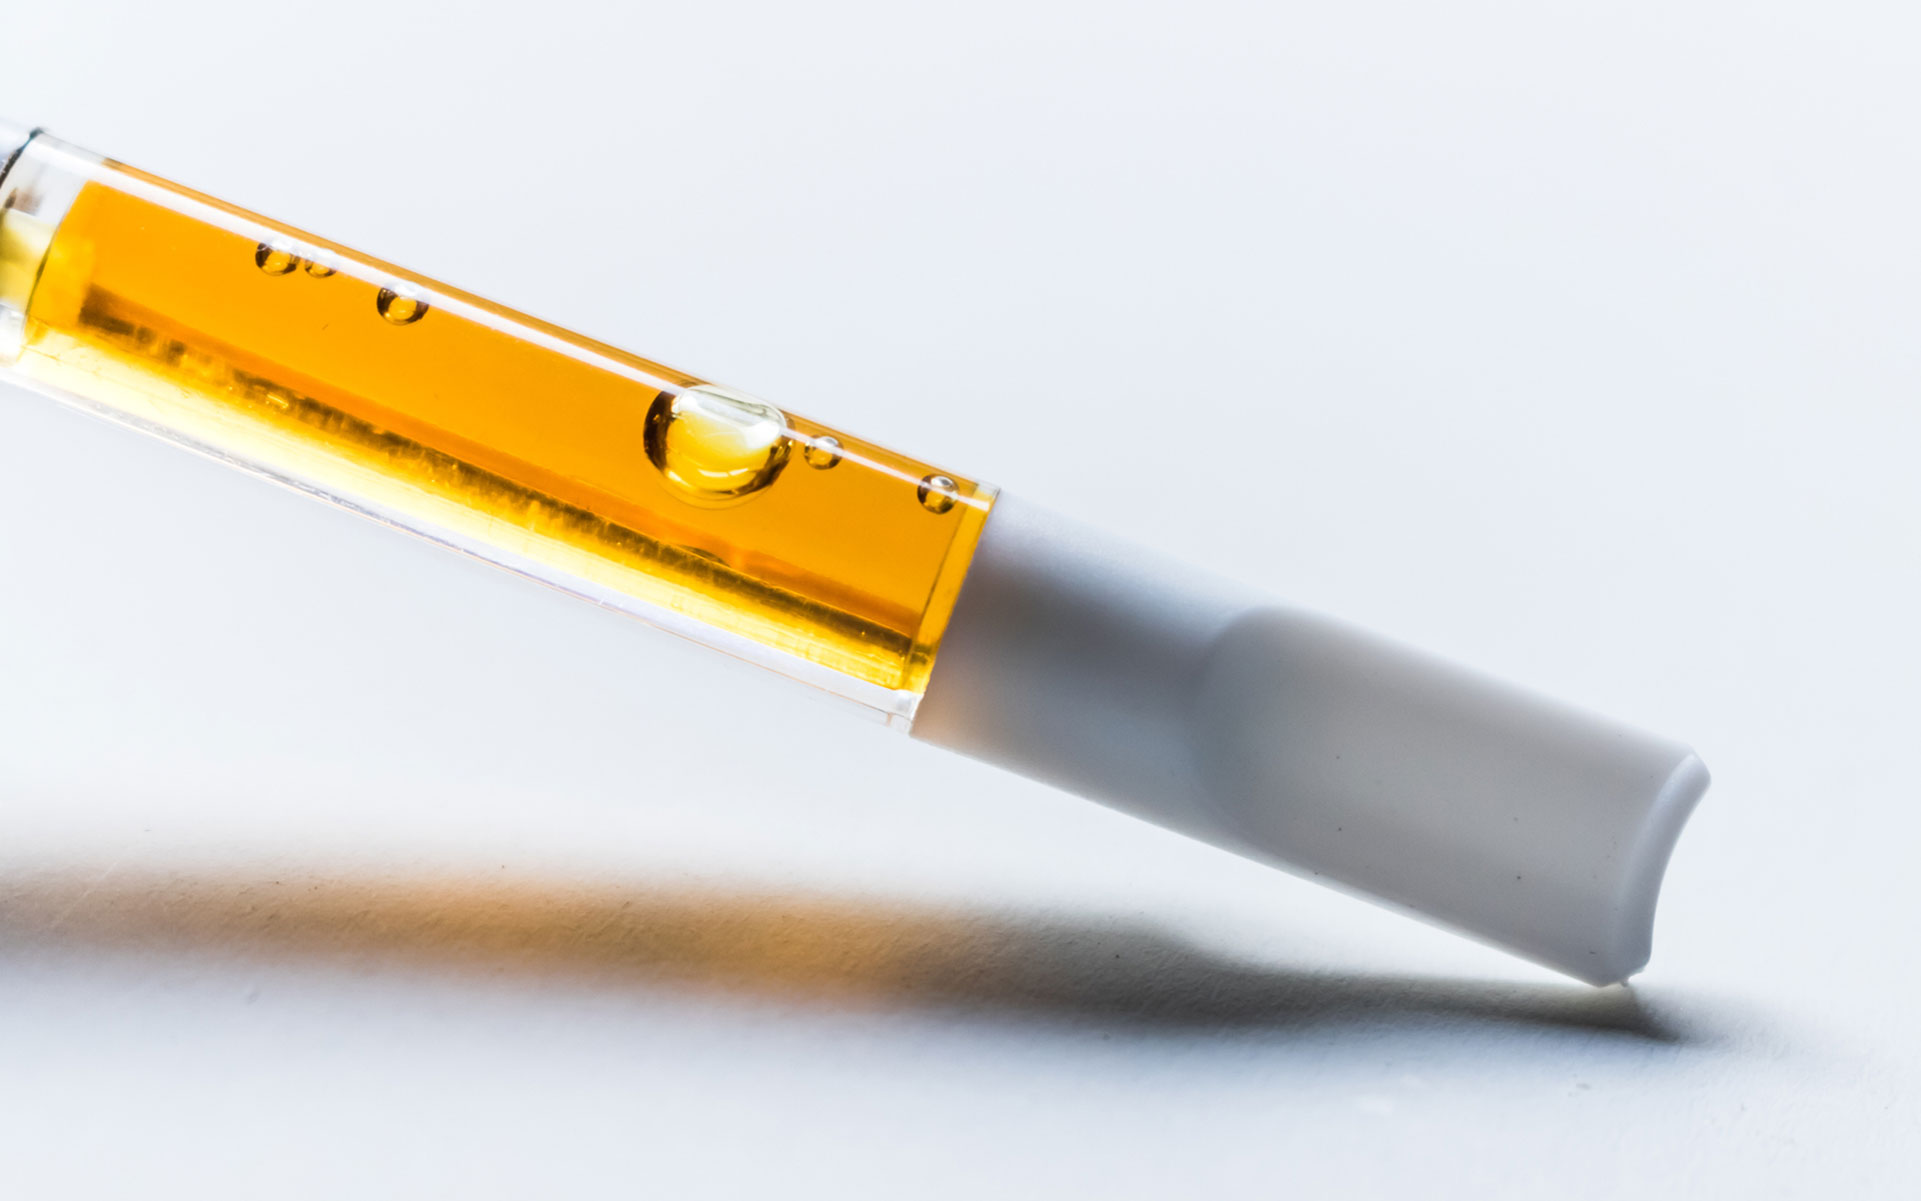 A Leafly investigation details the contaminated supply chain for illicit market THC vape carts. (HighGradeRoots/iStock)